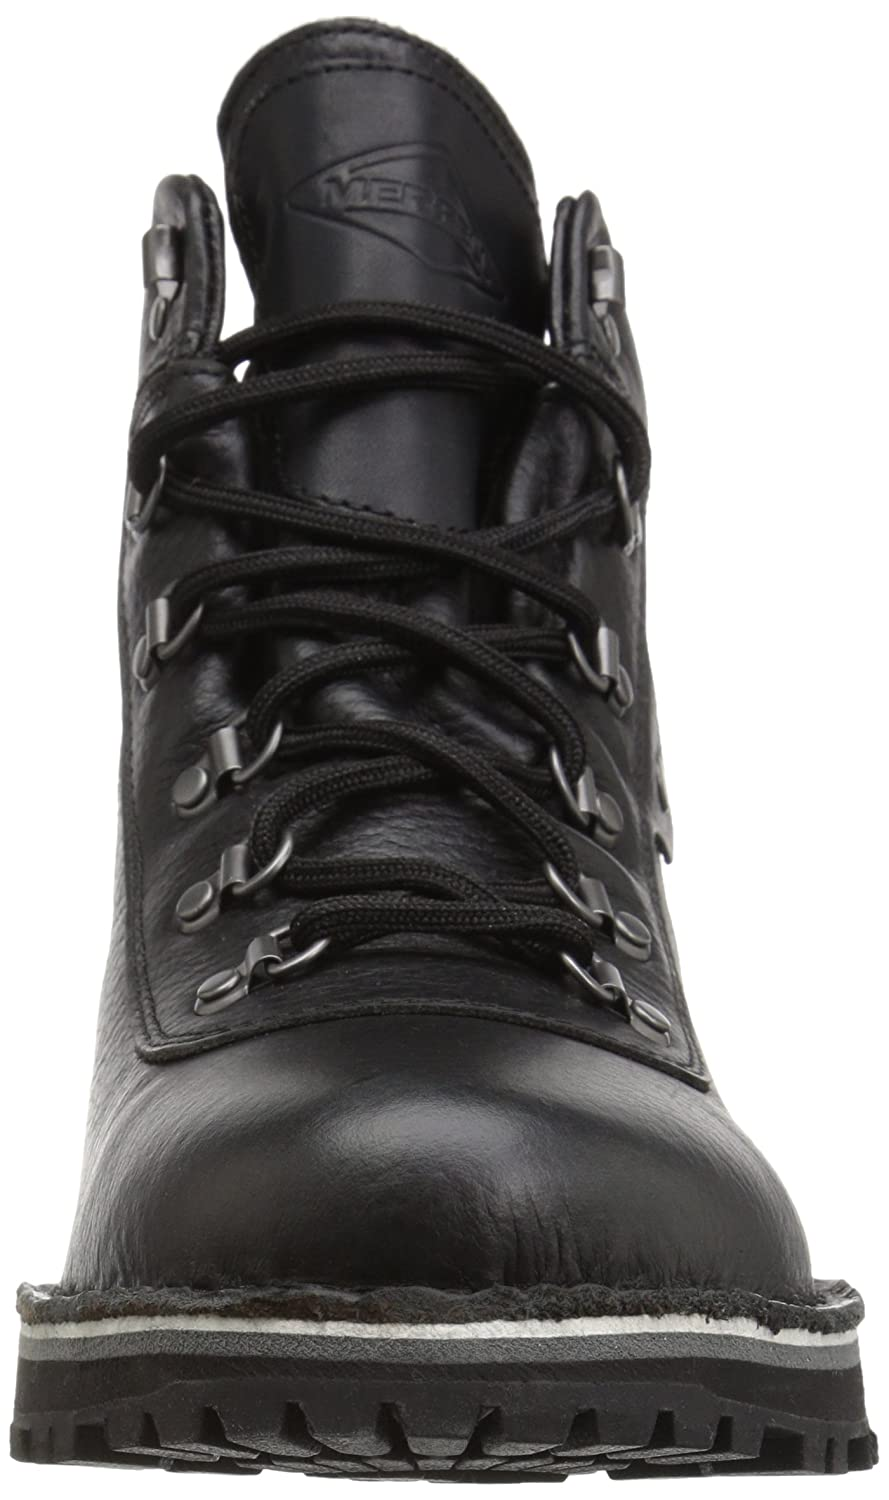 Merrell Women's Sugarbush Refresh Waterproof Hiking Boot B01NH9K9CG 10 B(M) US|Black